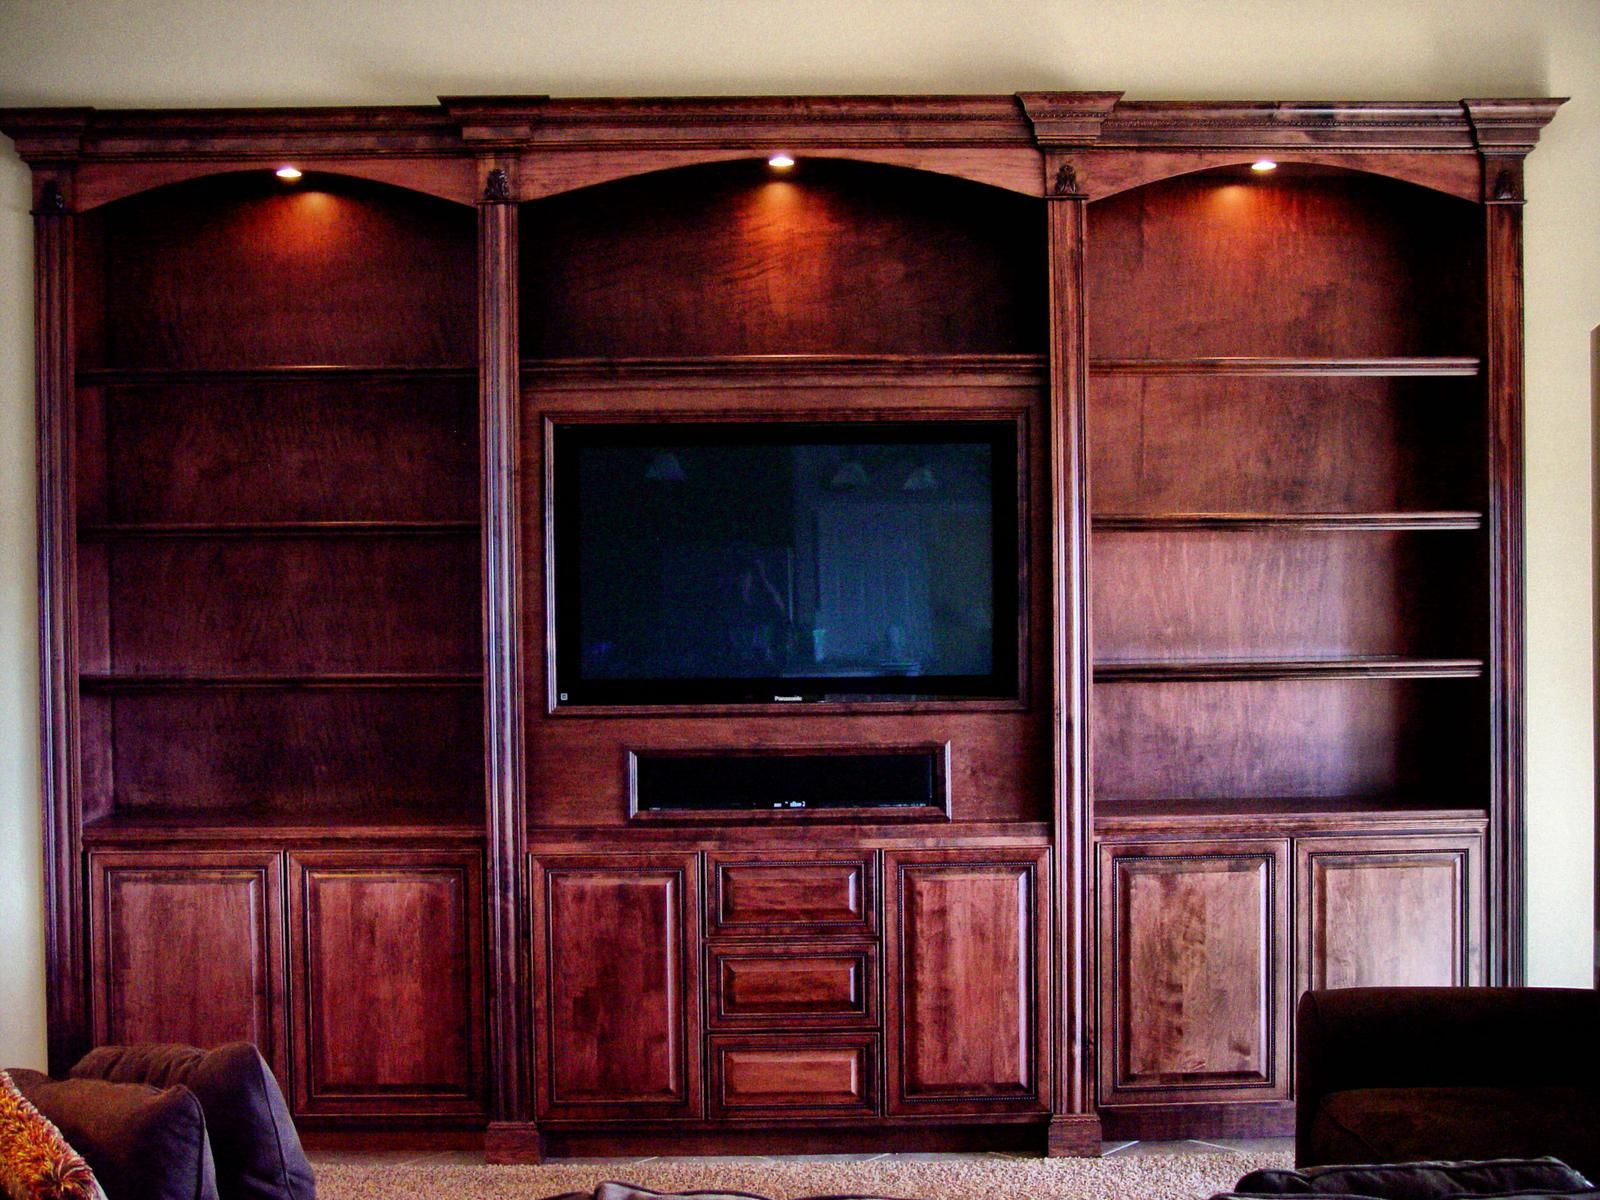 Custom Made Built In Entertainment Center Recessed Lighting Slight Changes To Area Below Television